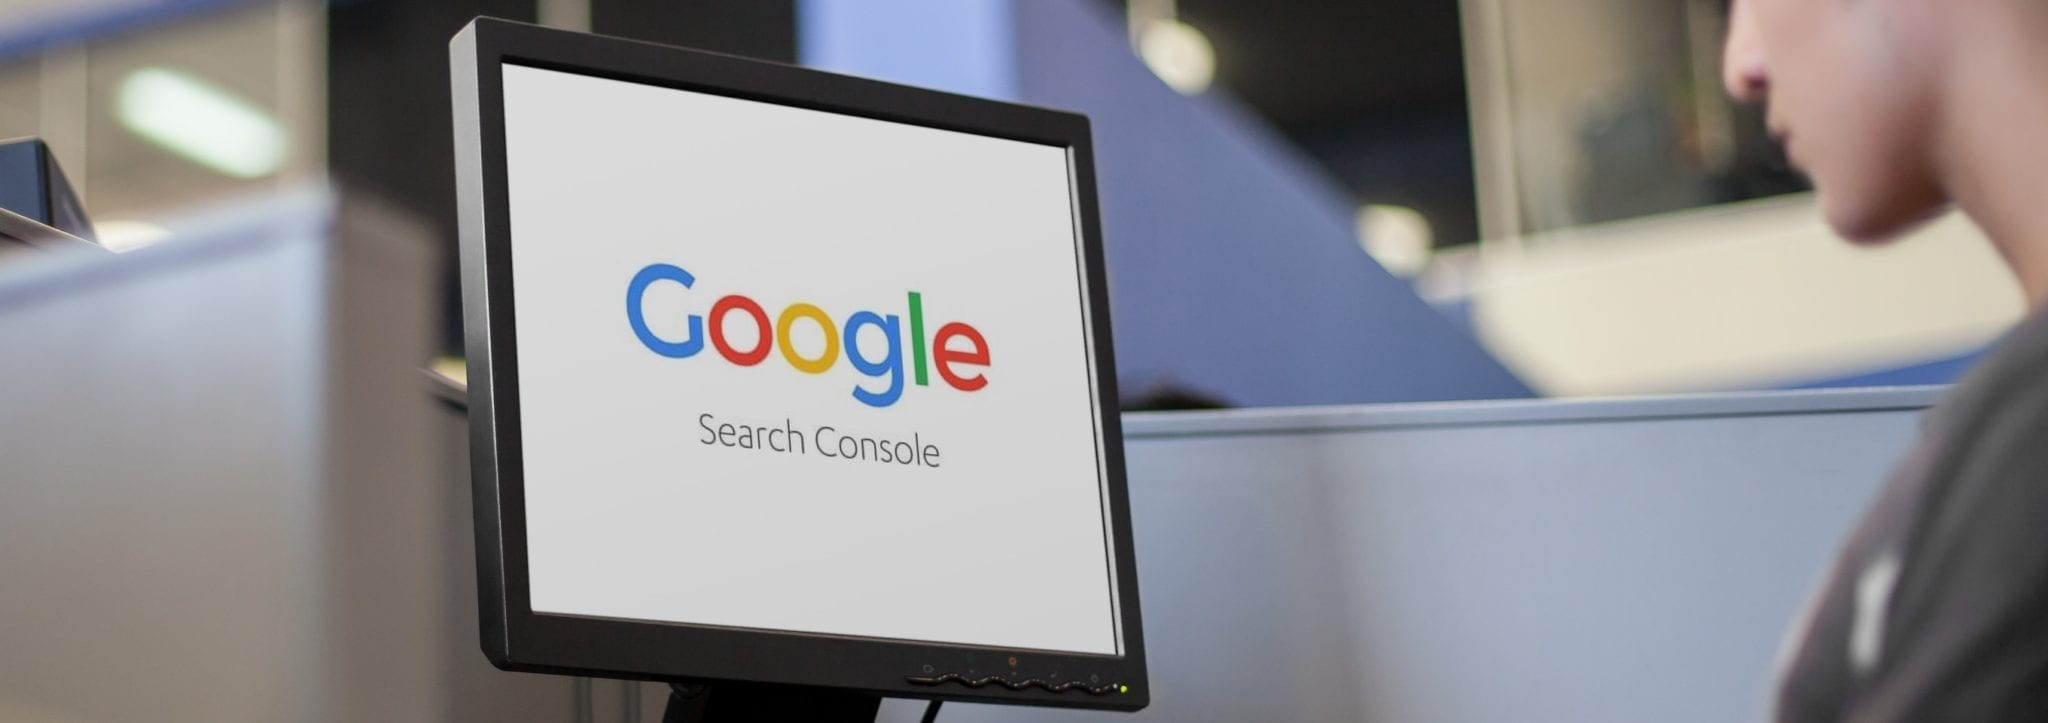 introducing-the-new-search-console-beta-message-what-is-the-new-google-search-console.jpg